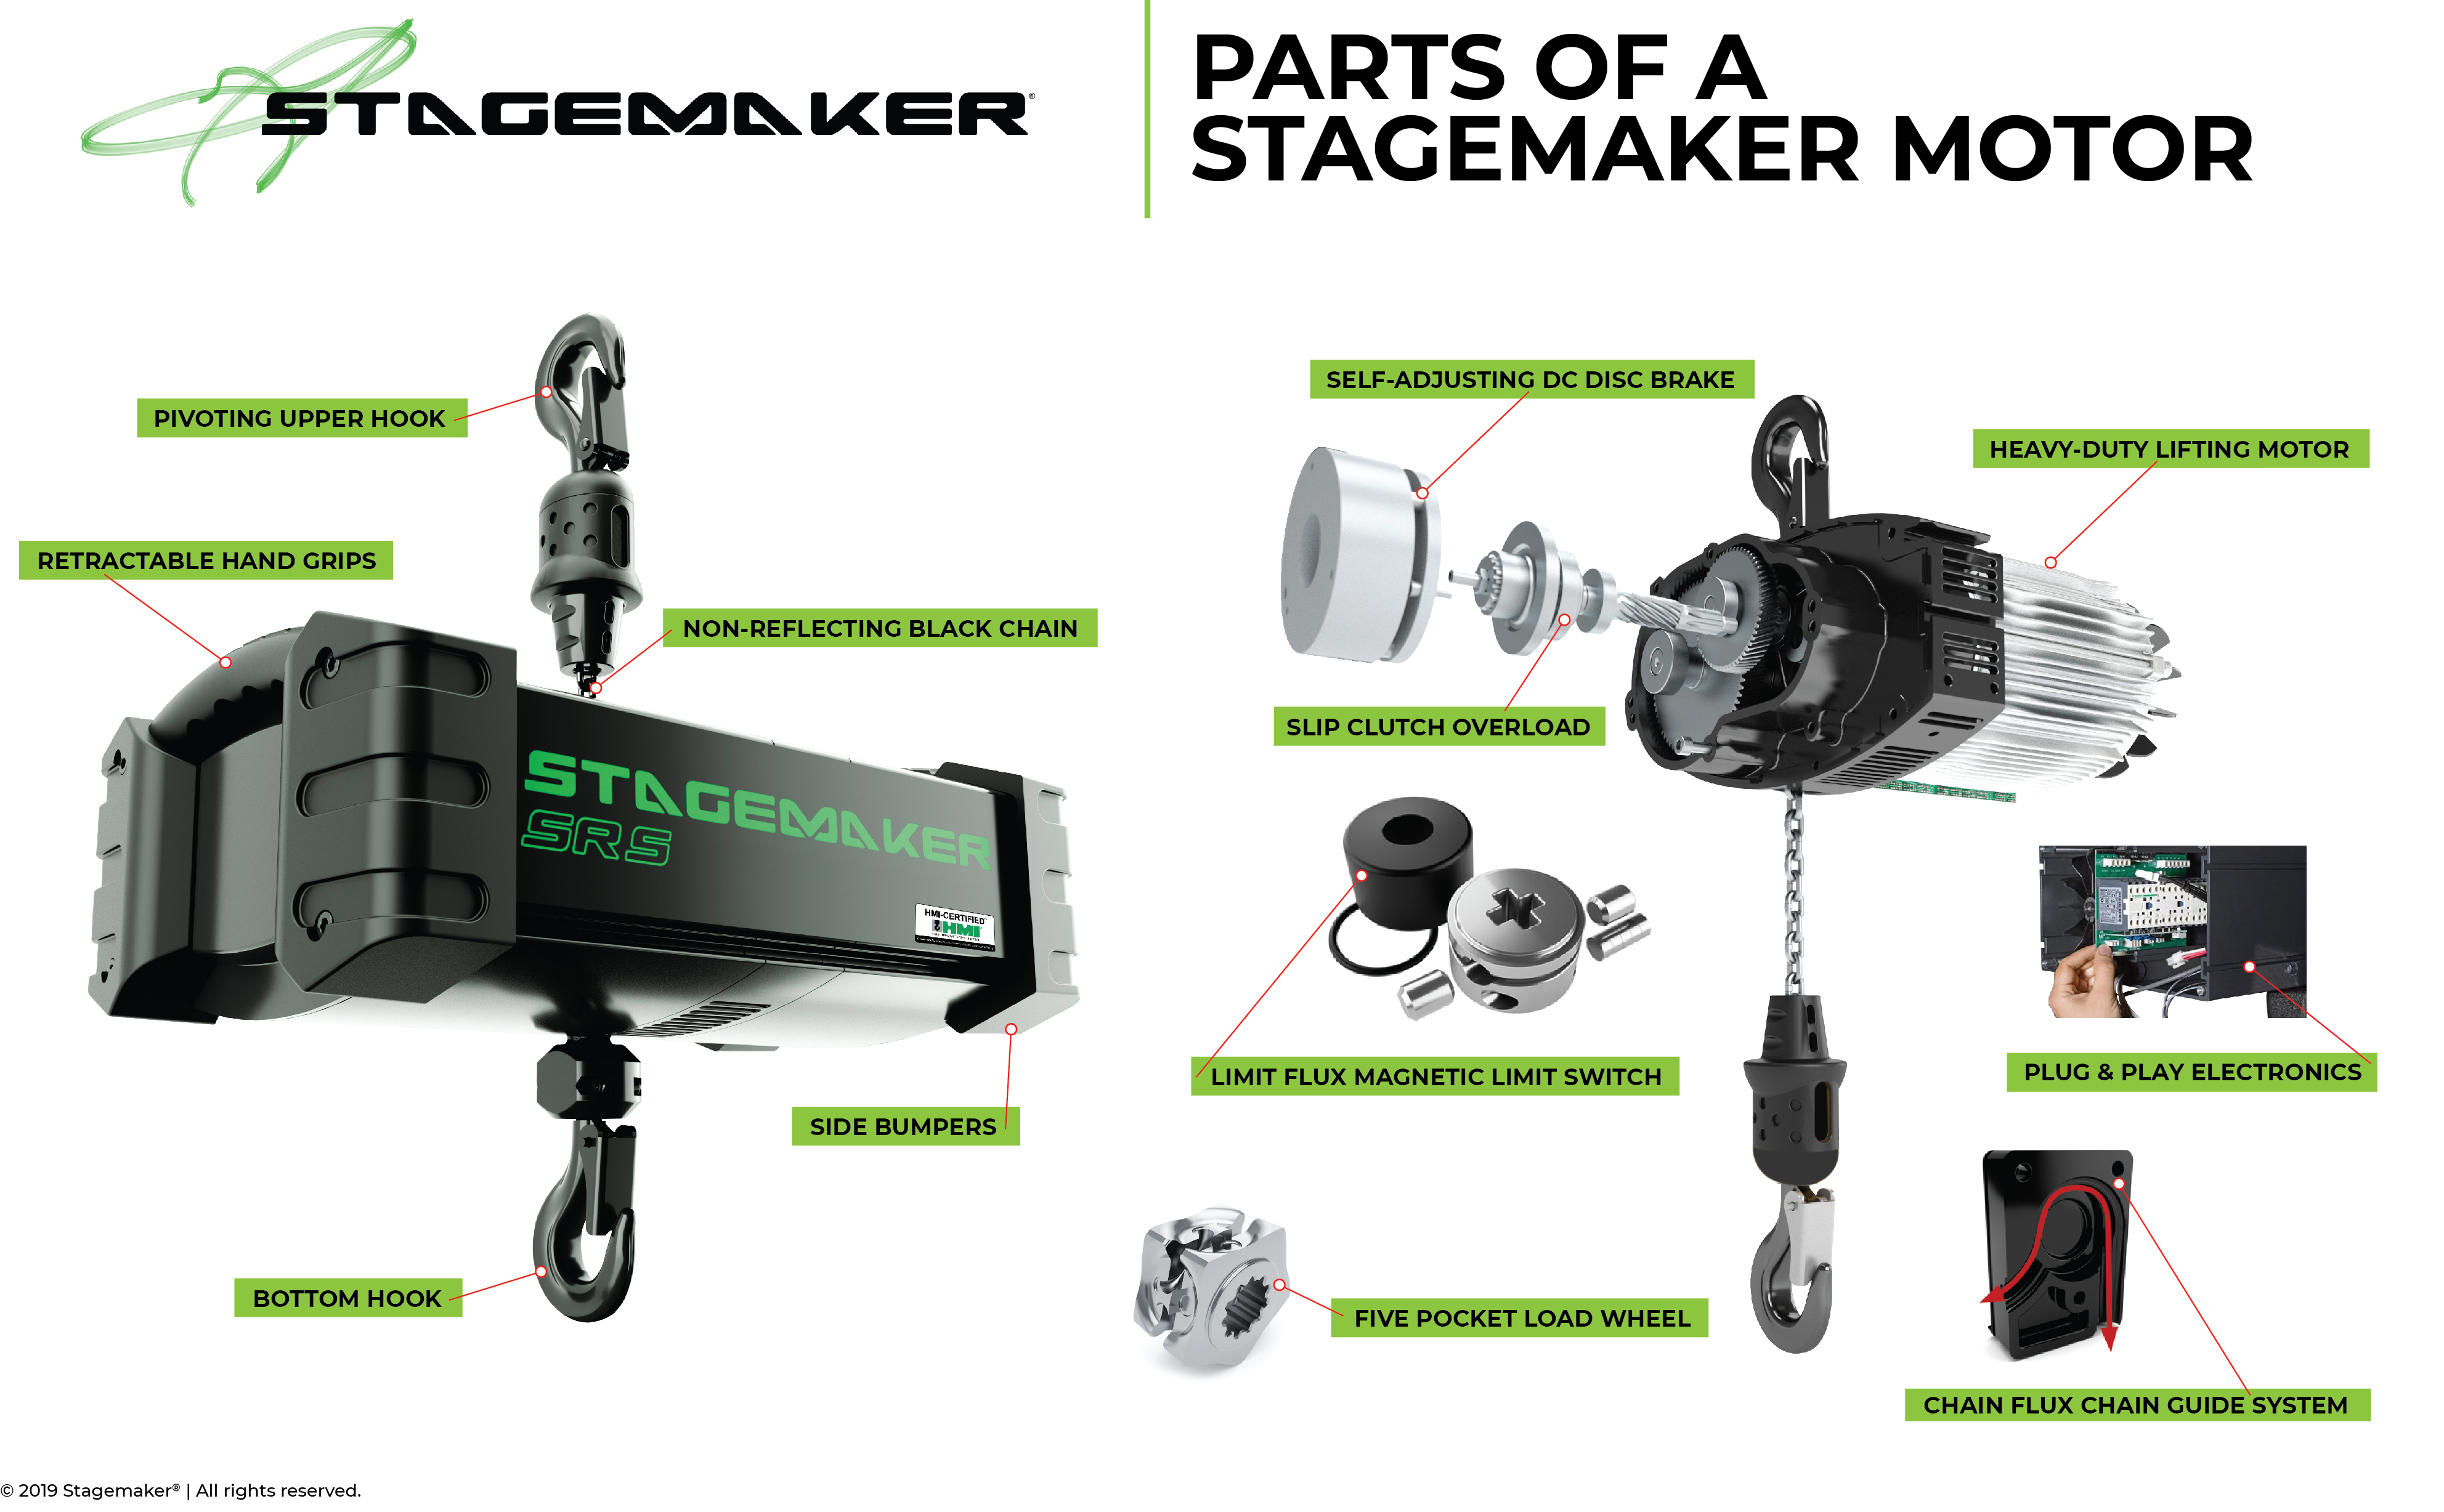 Parts of a Stagemaker motor